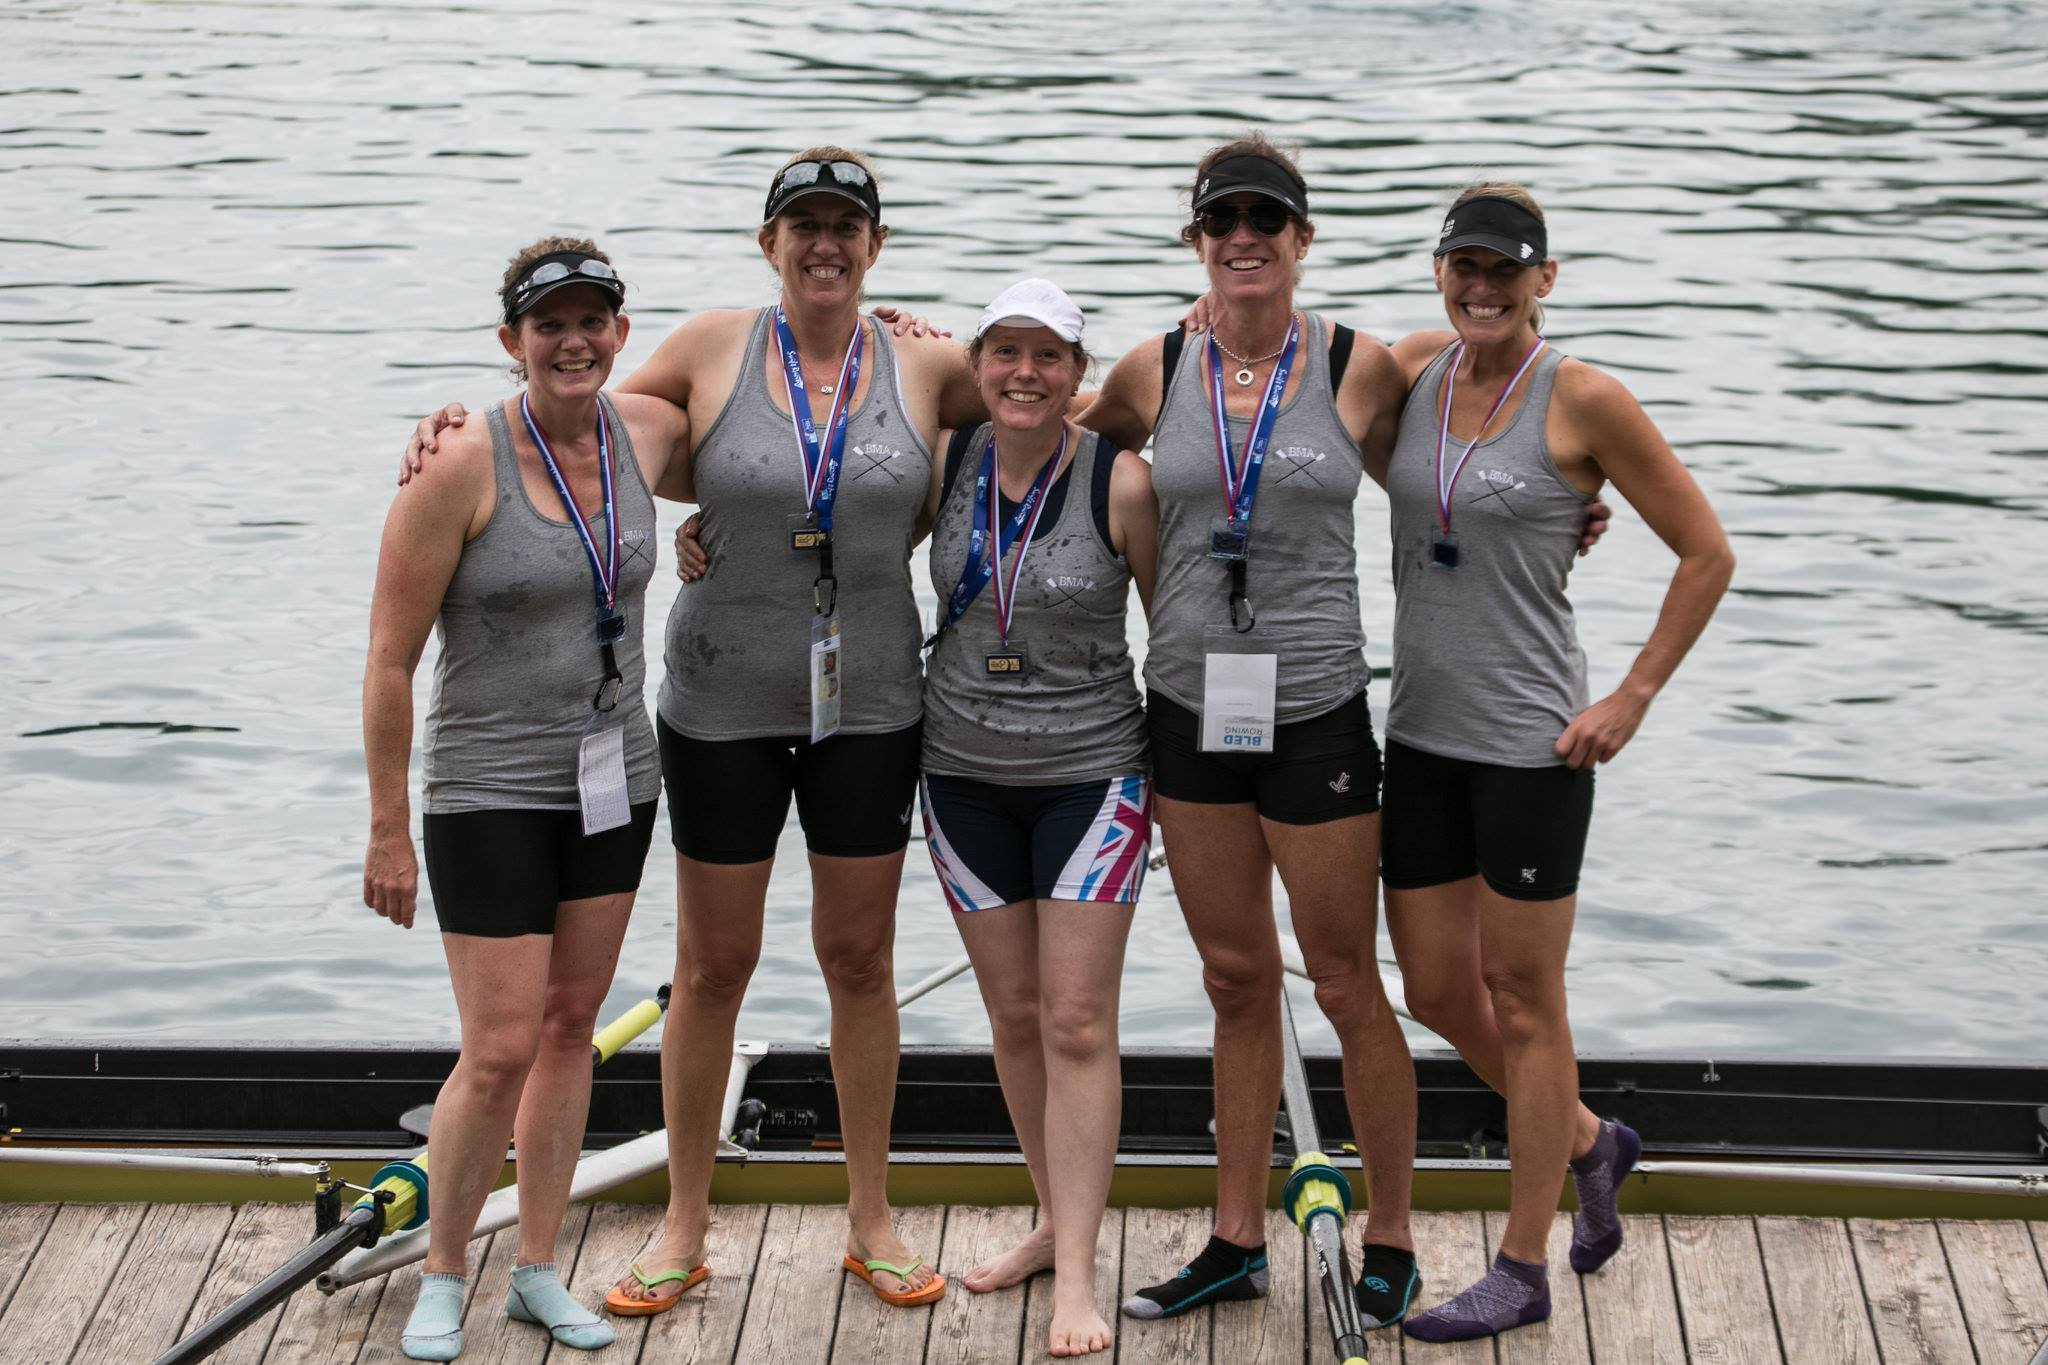 Victory in the WC4+ for Louisa, Julie, Laura, Jill and Tory